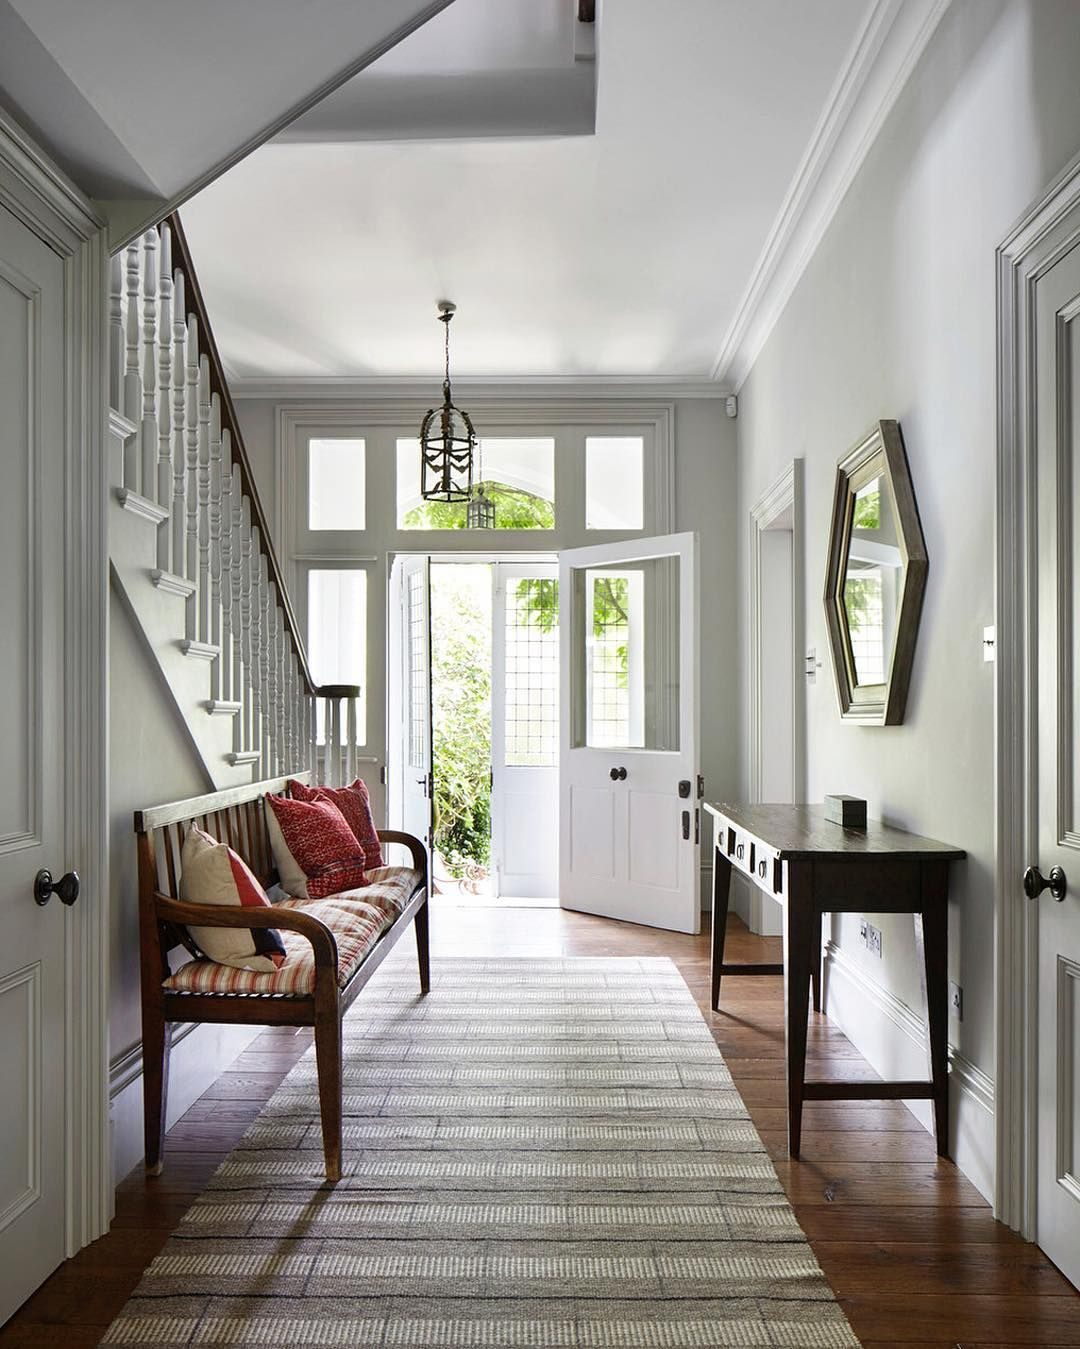 Home interior names awe inspiring architecture thelist  name dyer grimes